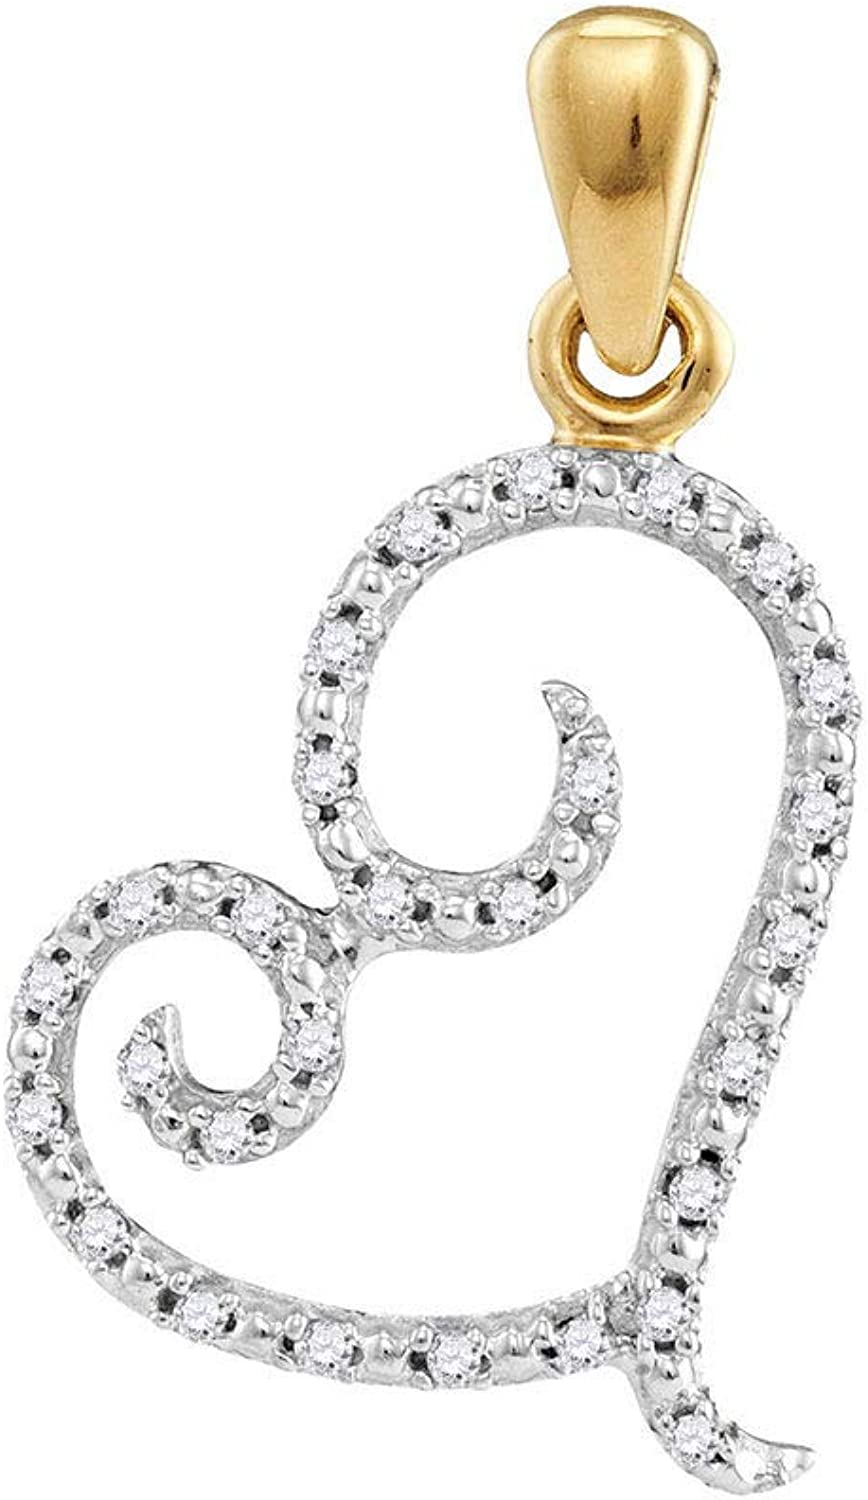 10kt Yellow gold Womens Round Diamond Curled Heart Pendant 1 10 Cttw